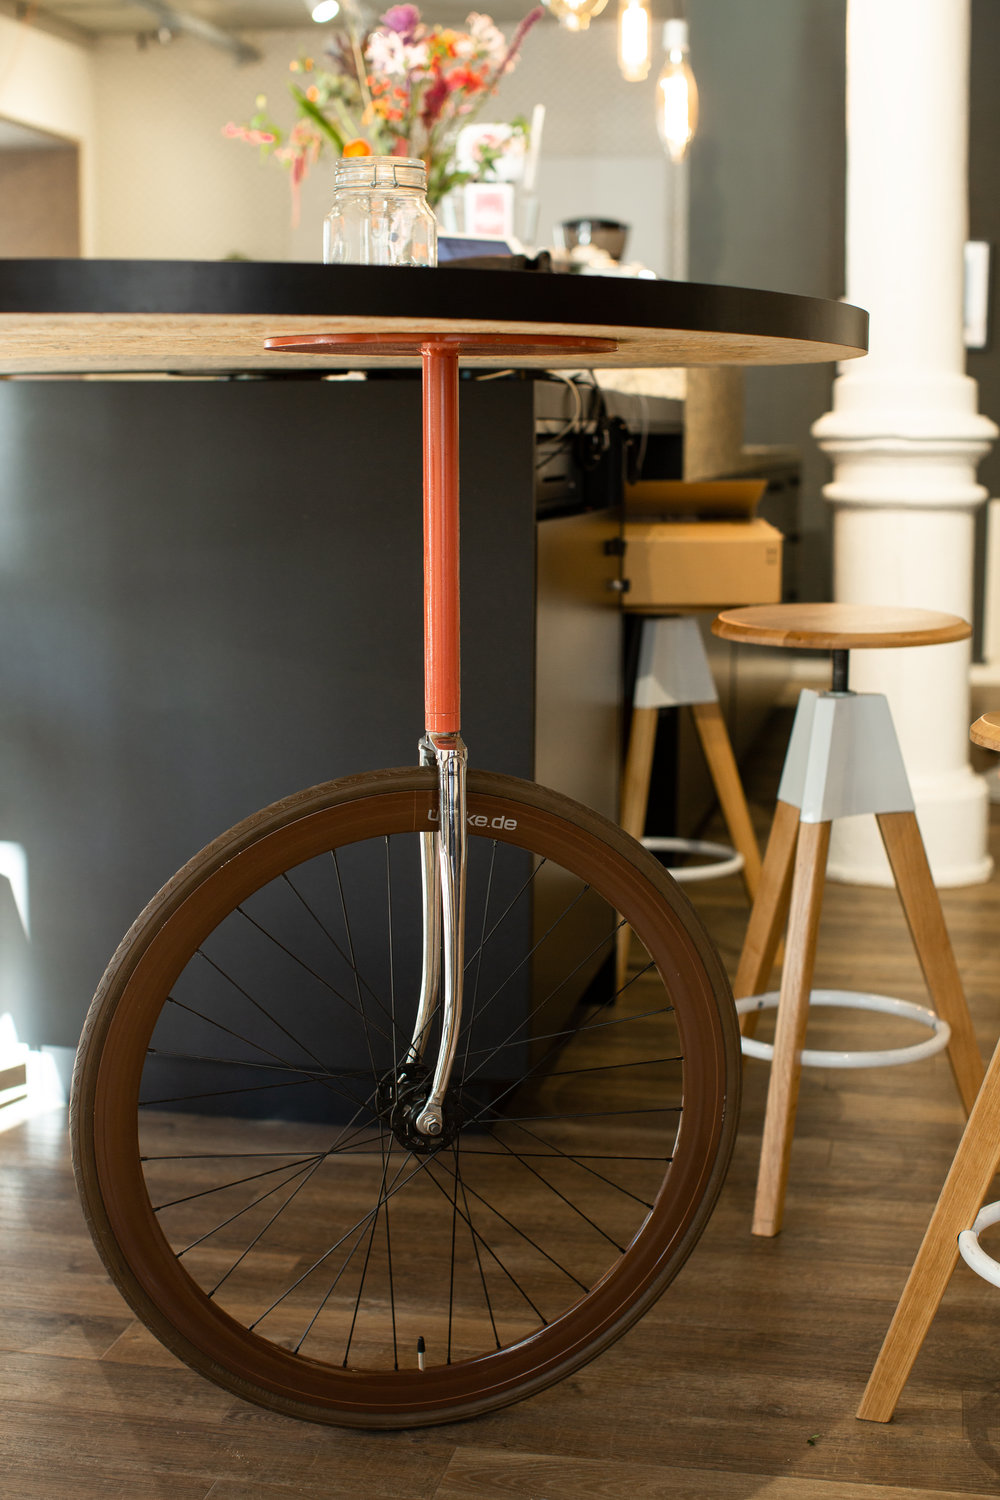 Mates Munich, Coworking, co-working space, bar, communication, office, interior architecture, design, table, barstool